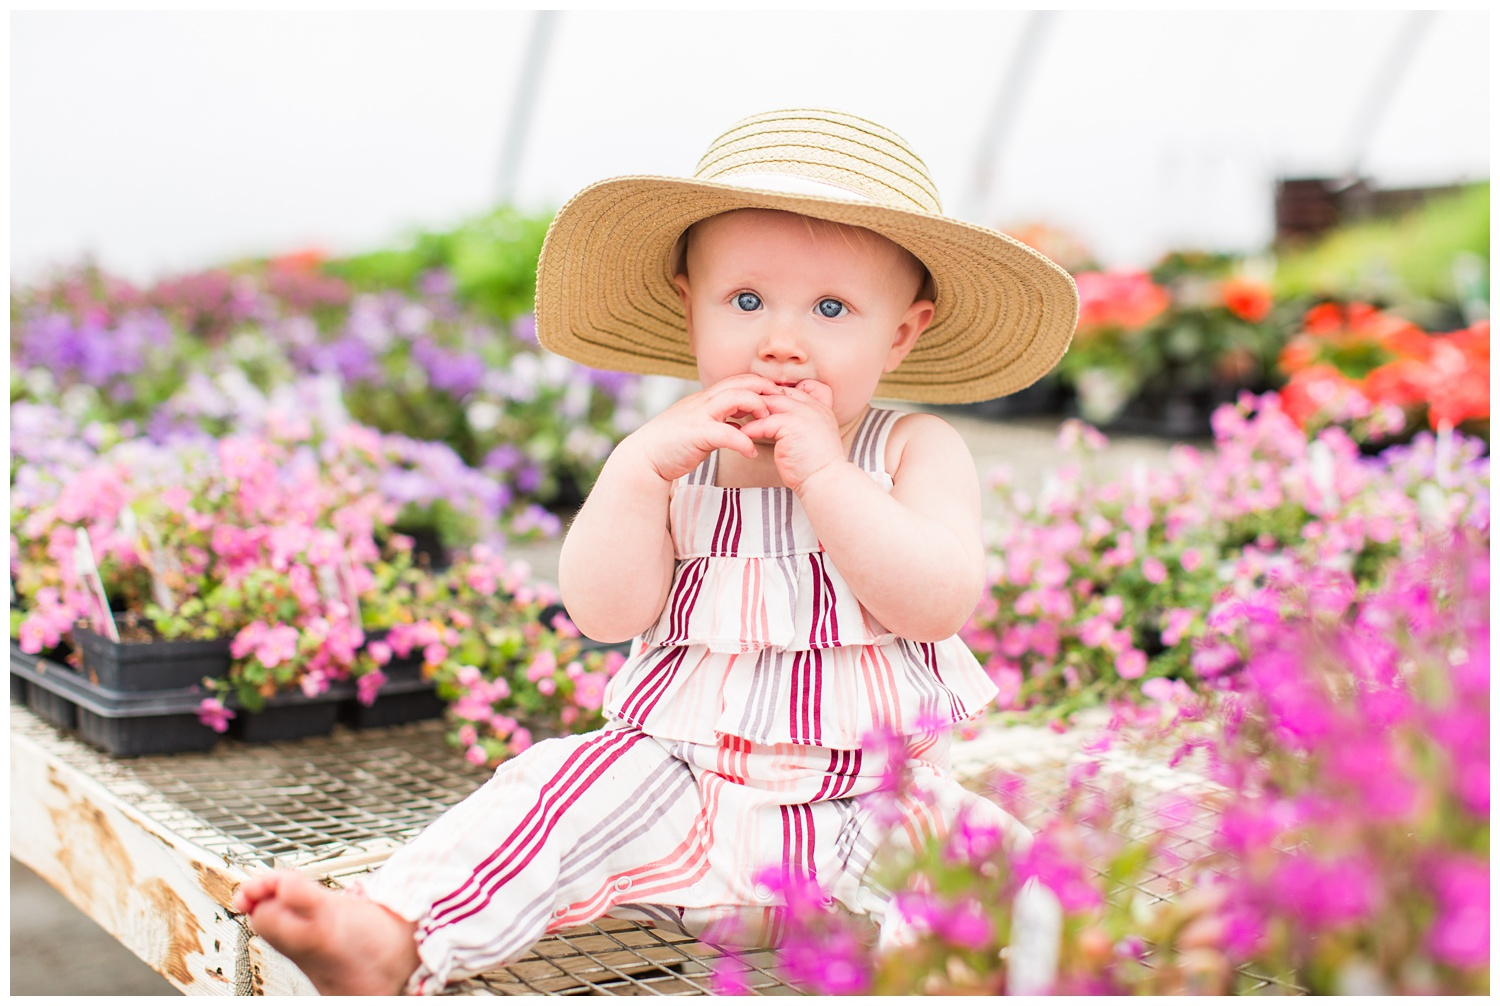 Baby Ivy sitting among florals in a greenhouse wearing a fun floppy hat.